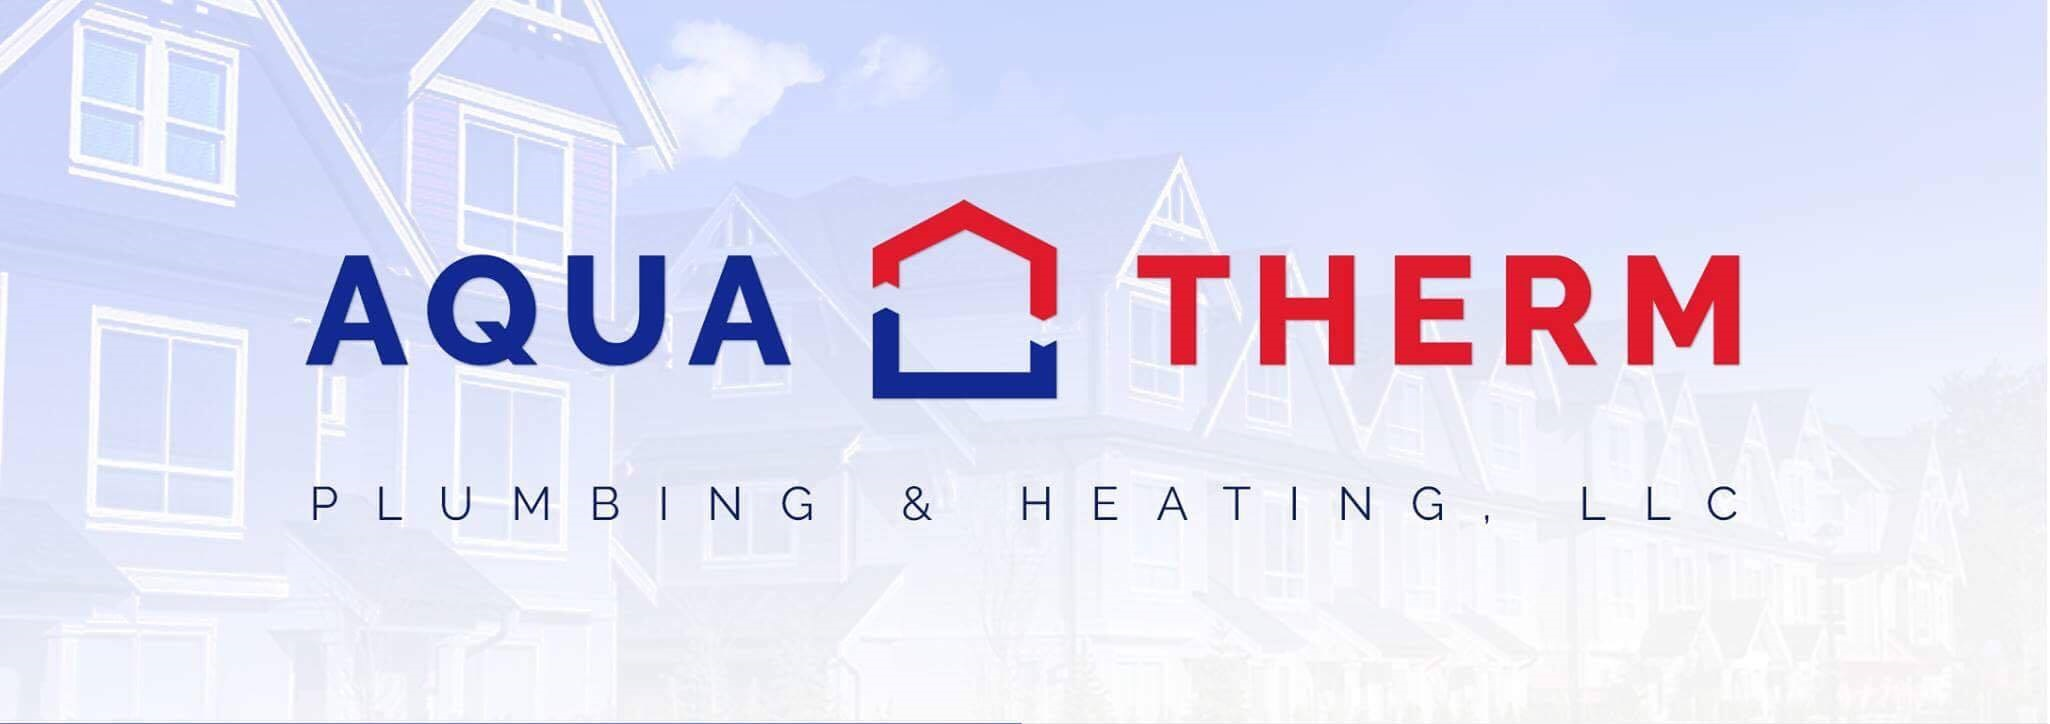 Aqua Therm Plumbing & Heating LLC